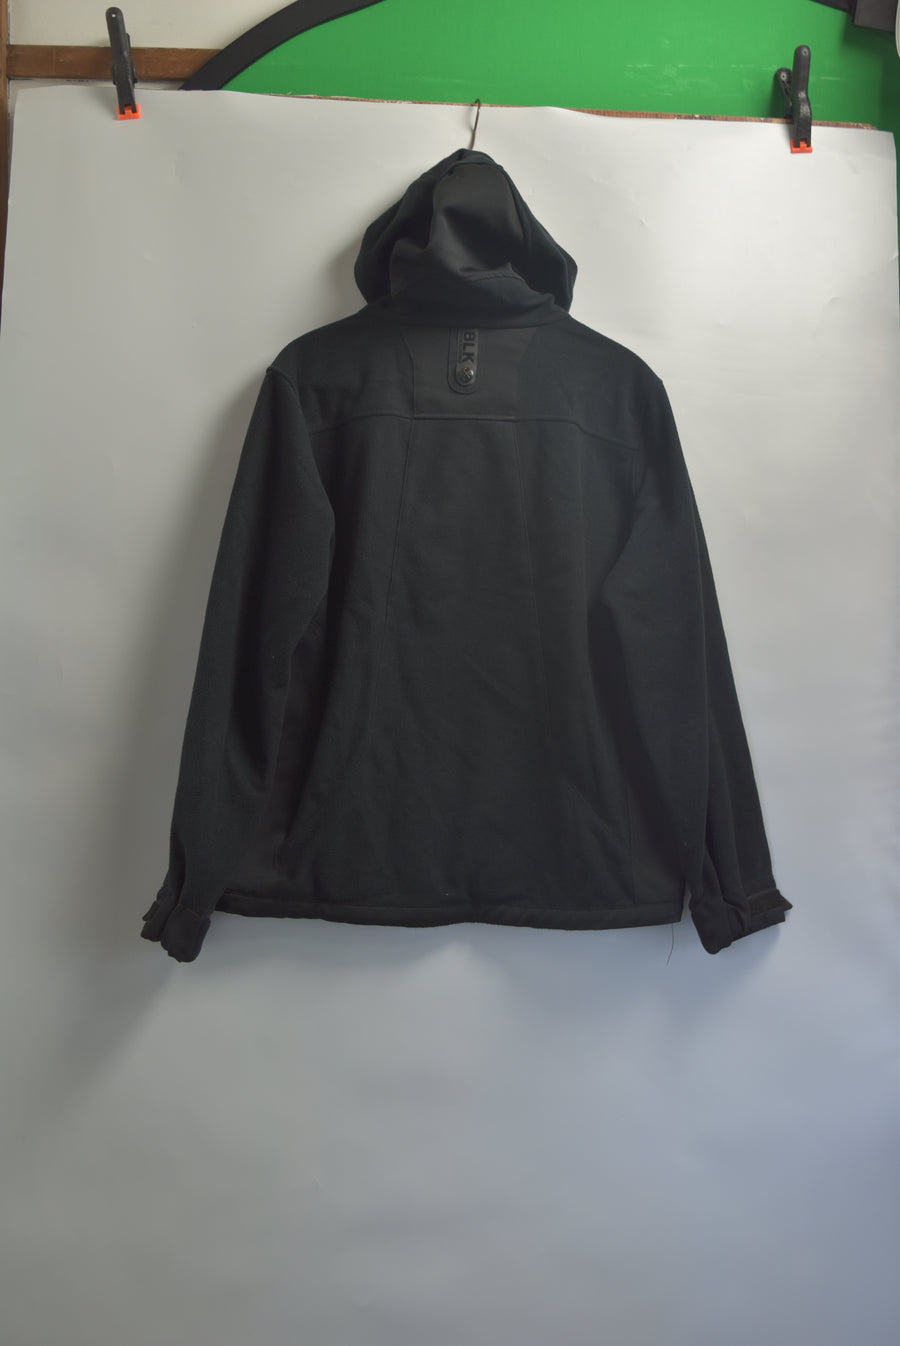 White Mountaineering / BLK Outdoor Hooded Jacket / 8169 - 0703 97